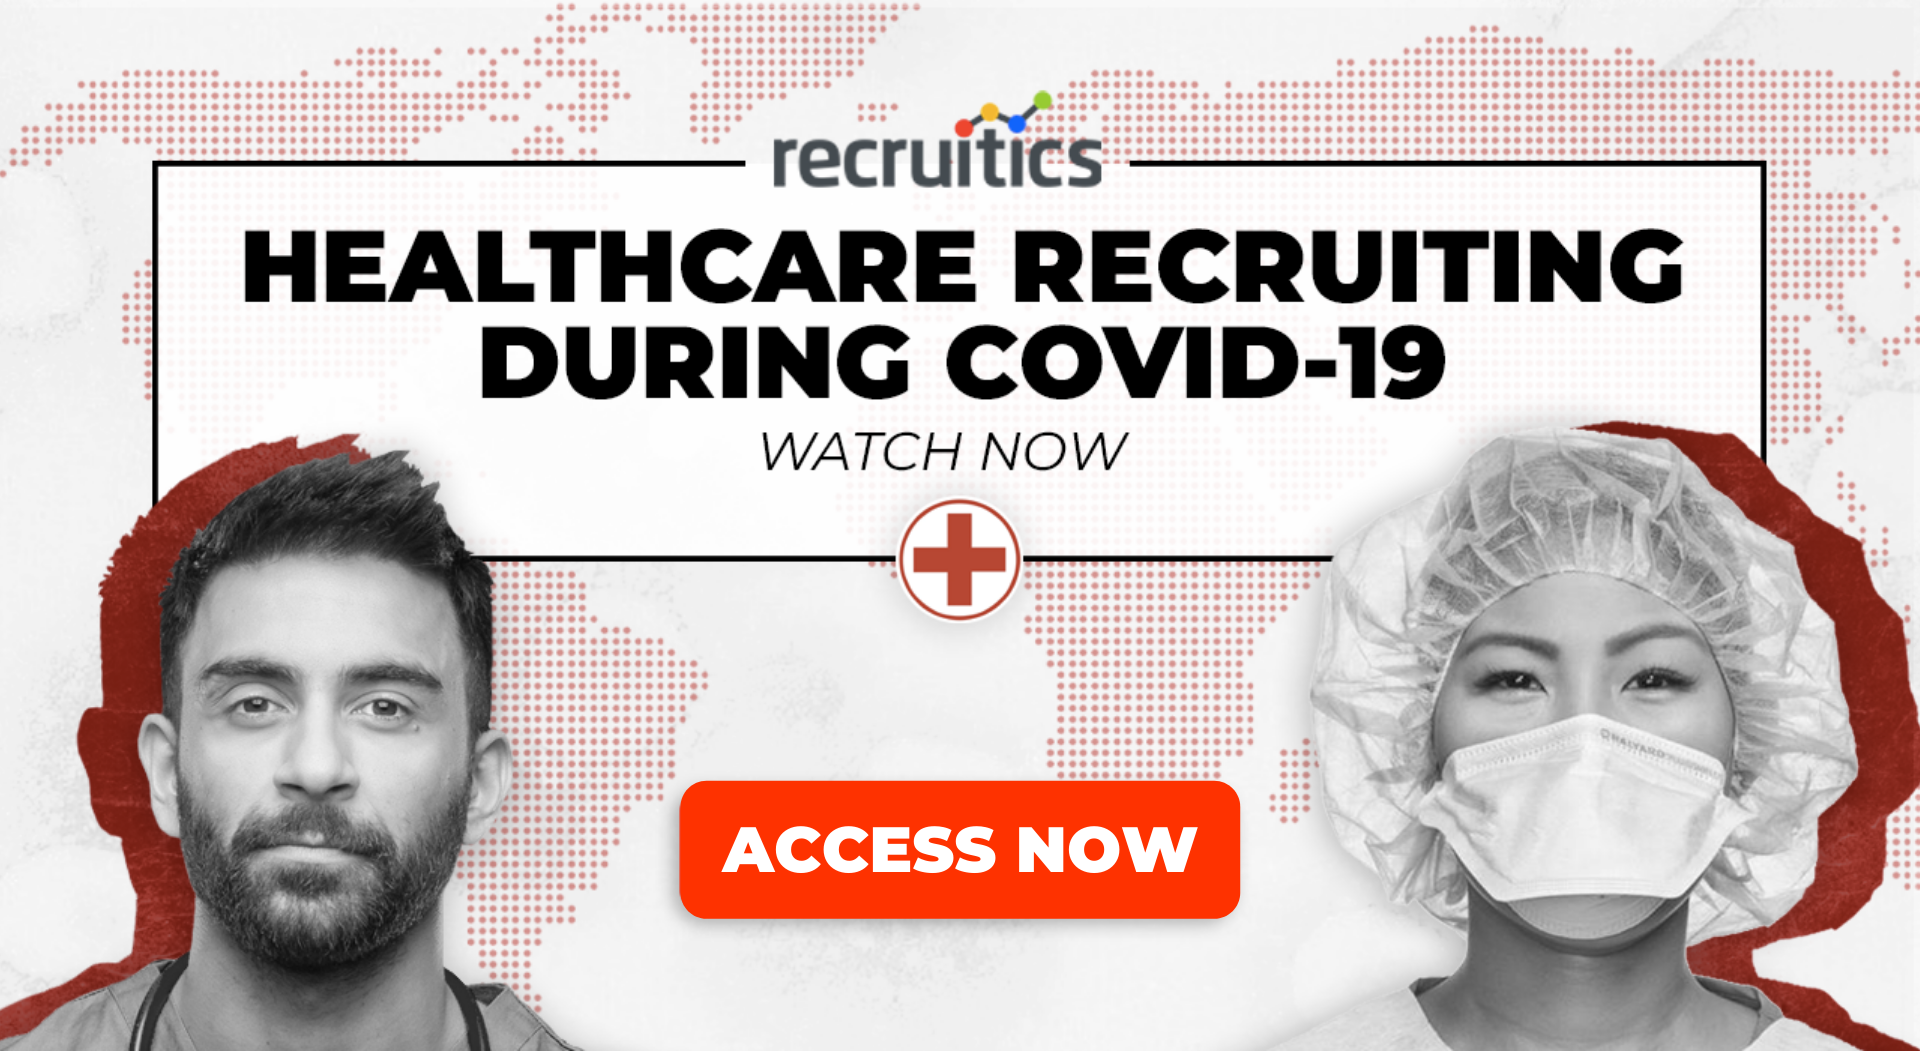 healthcare recruiting during a crisis covid-19 coronavirus hiring talent acquisition